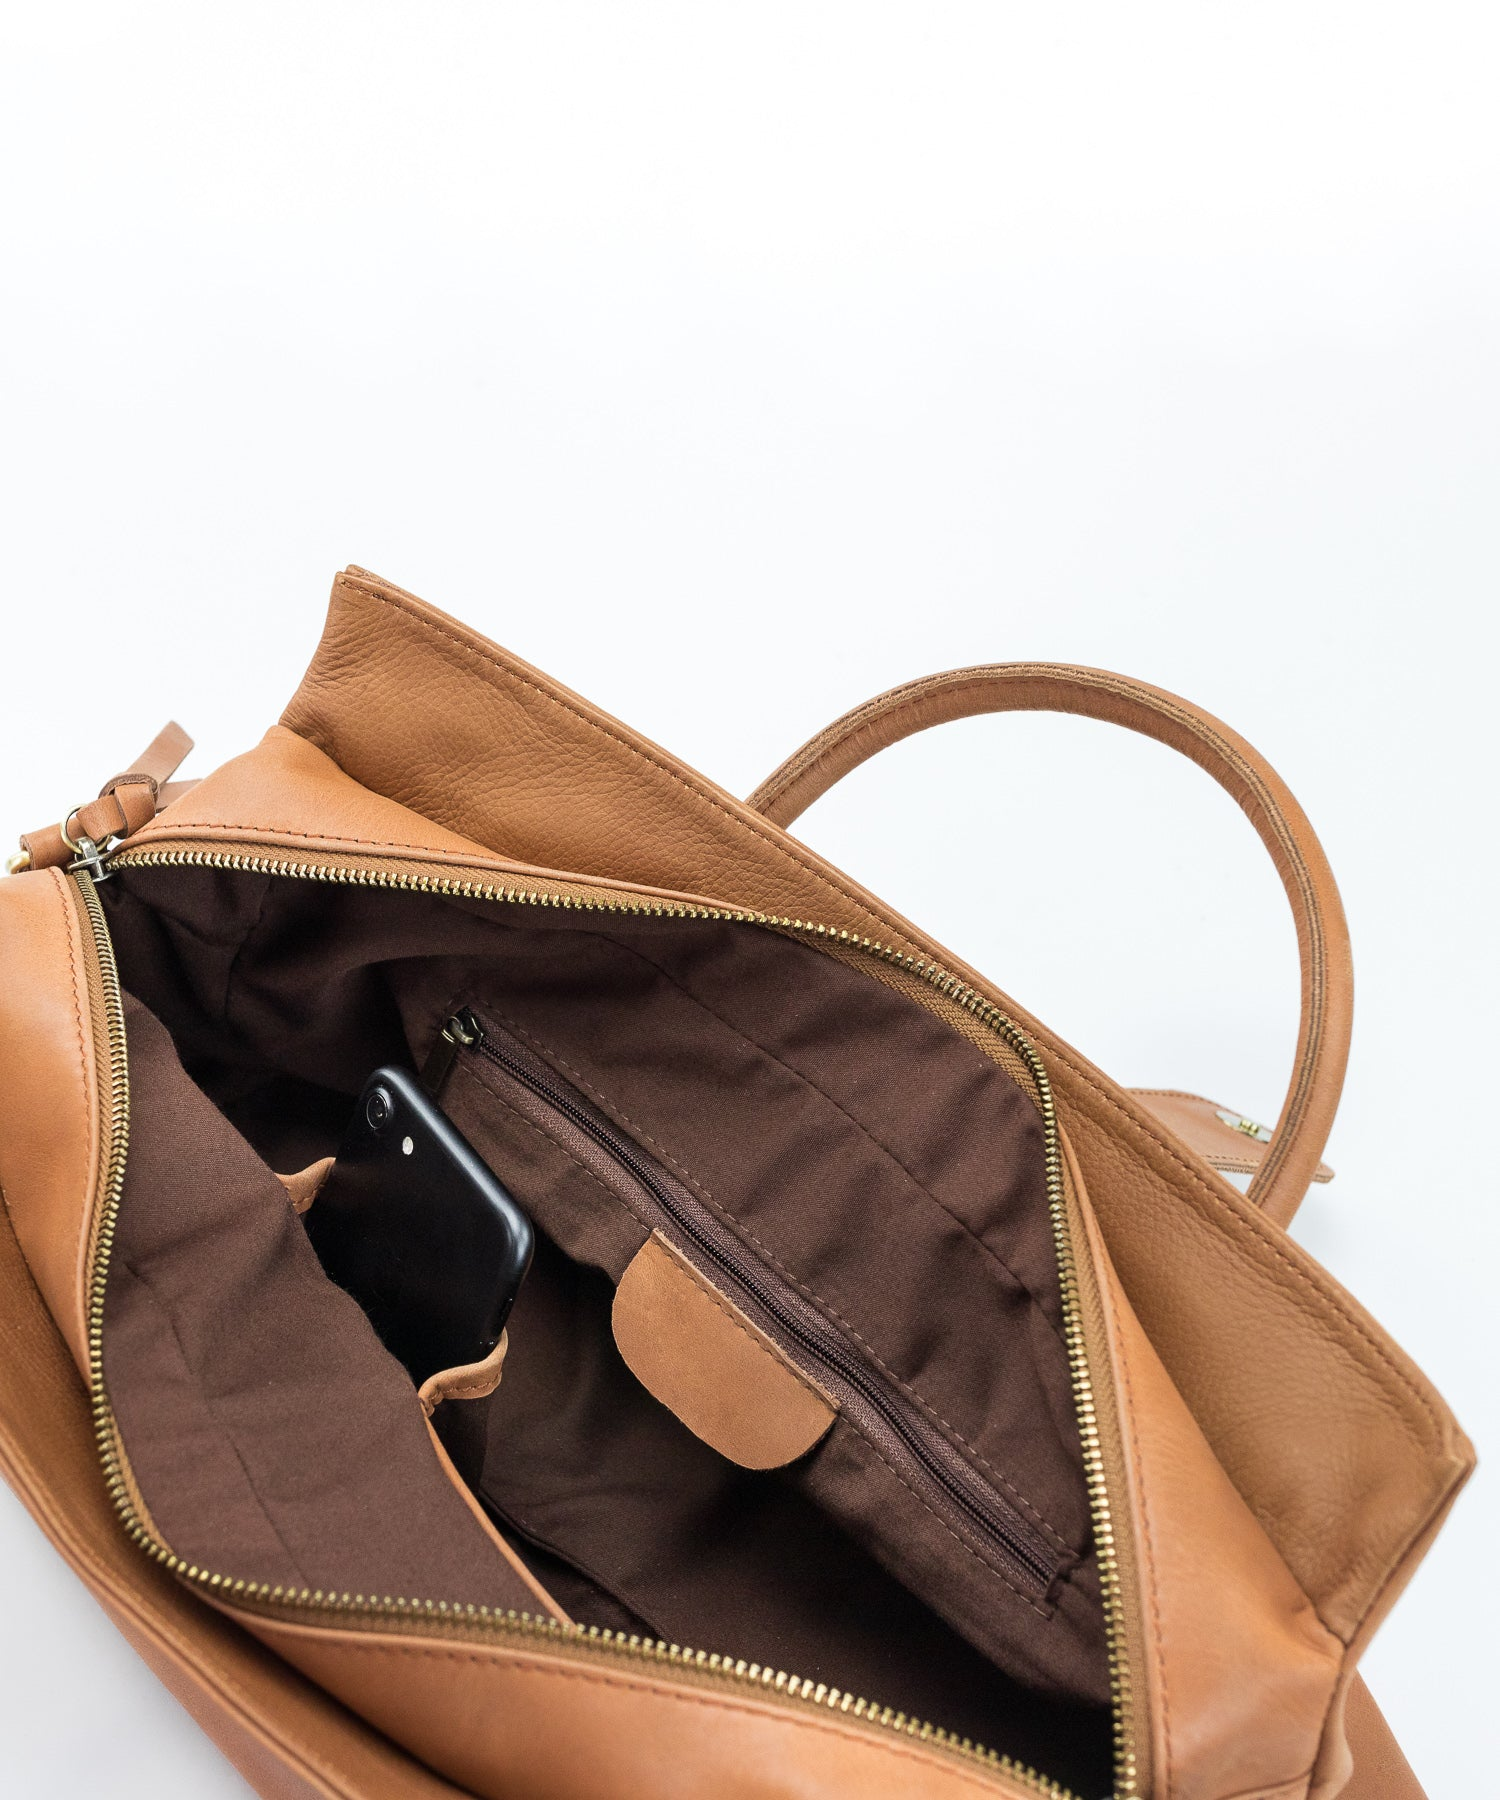 Aether brown Duffel-Style Everyday BagAether blush Duffel-Style Everyday Bag